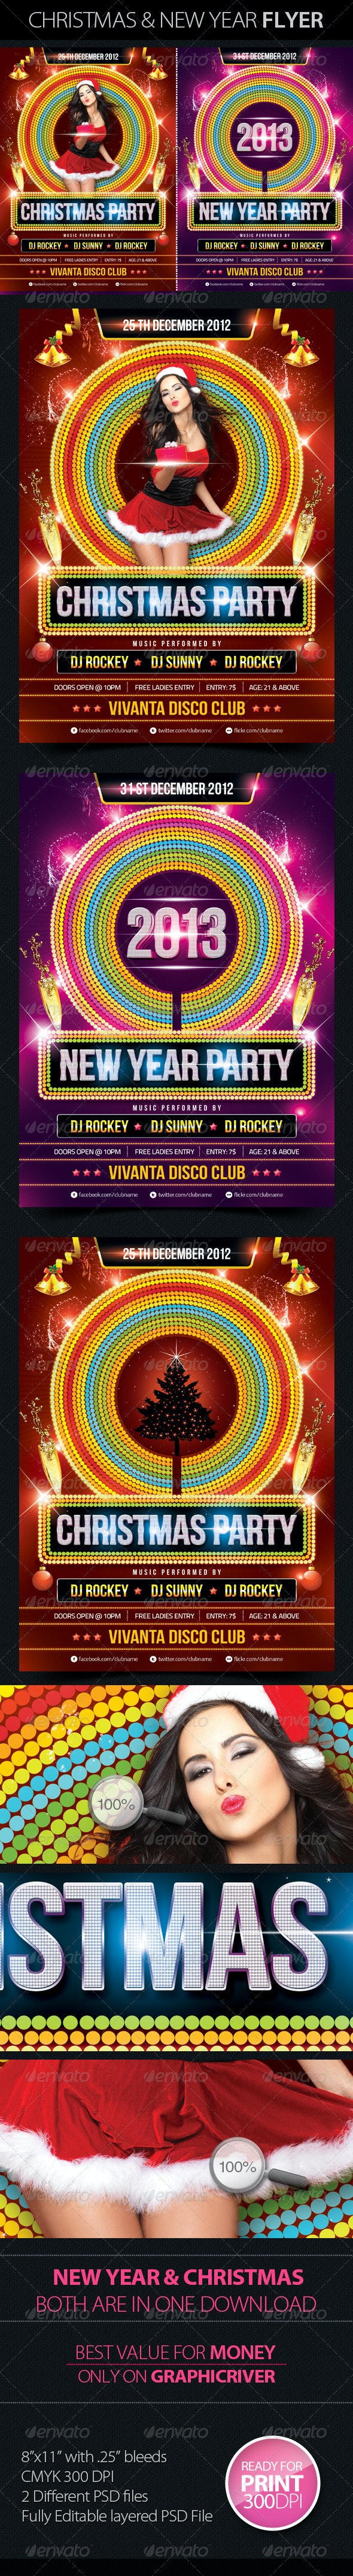 Christmas & New Year Party Flyers - Clubs & Parties Events